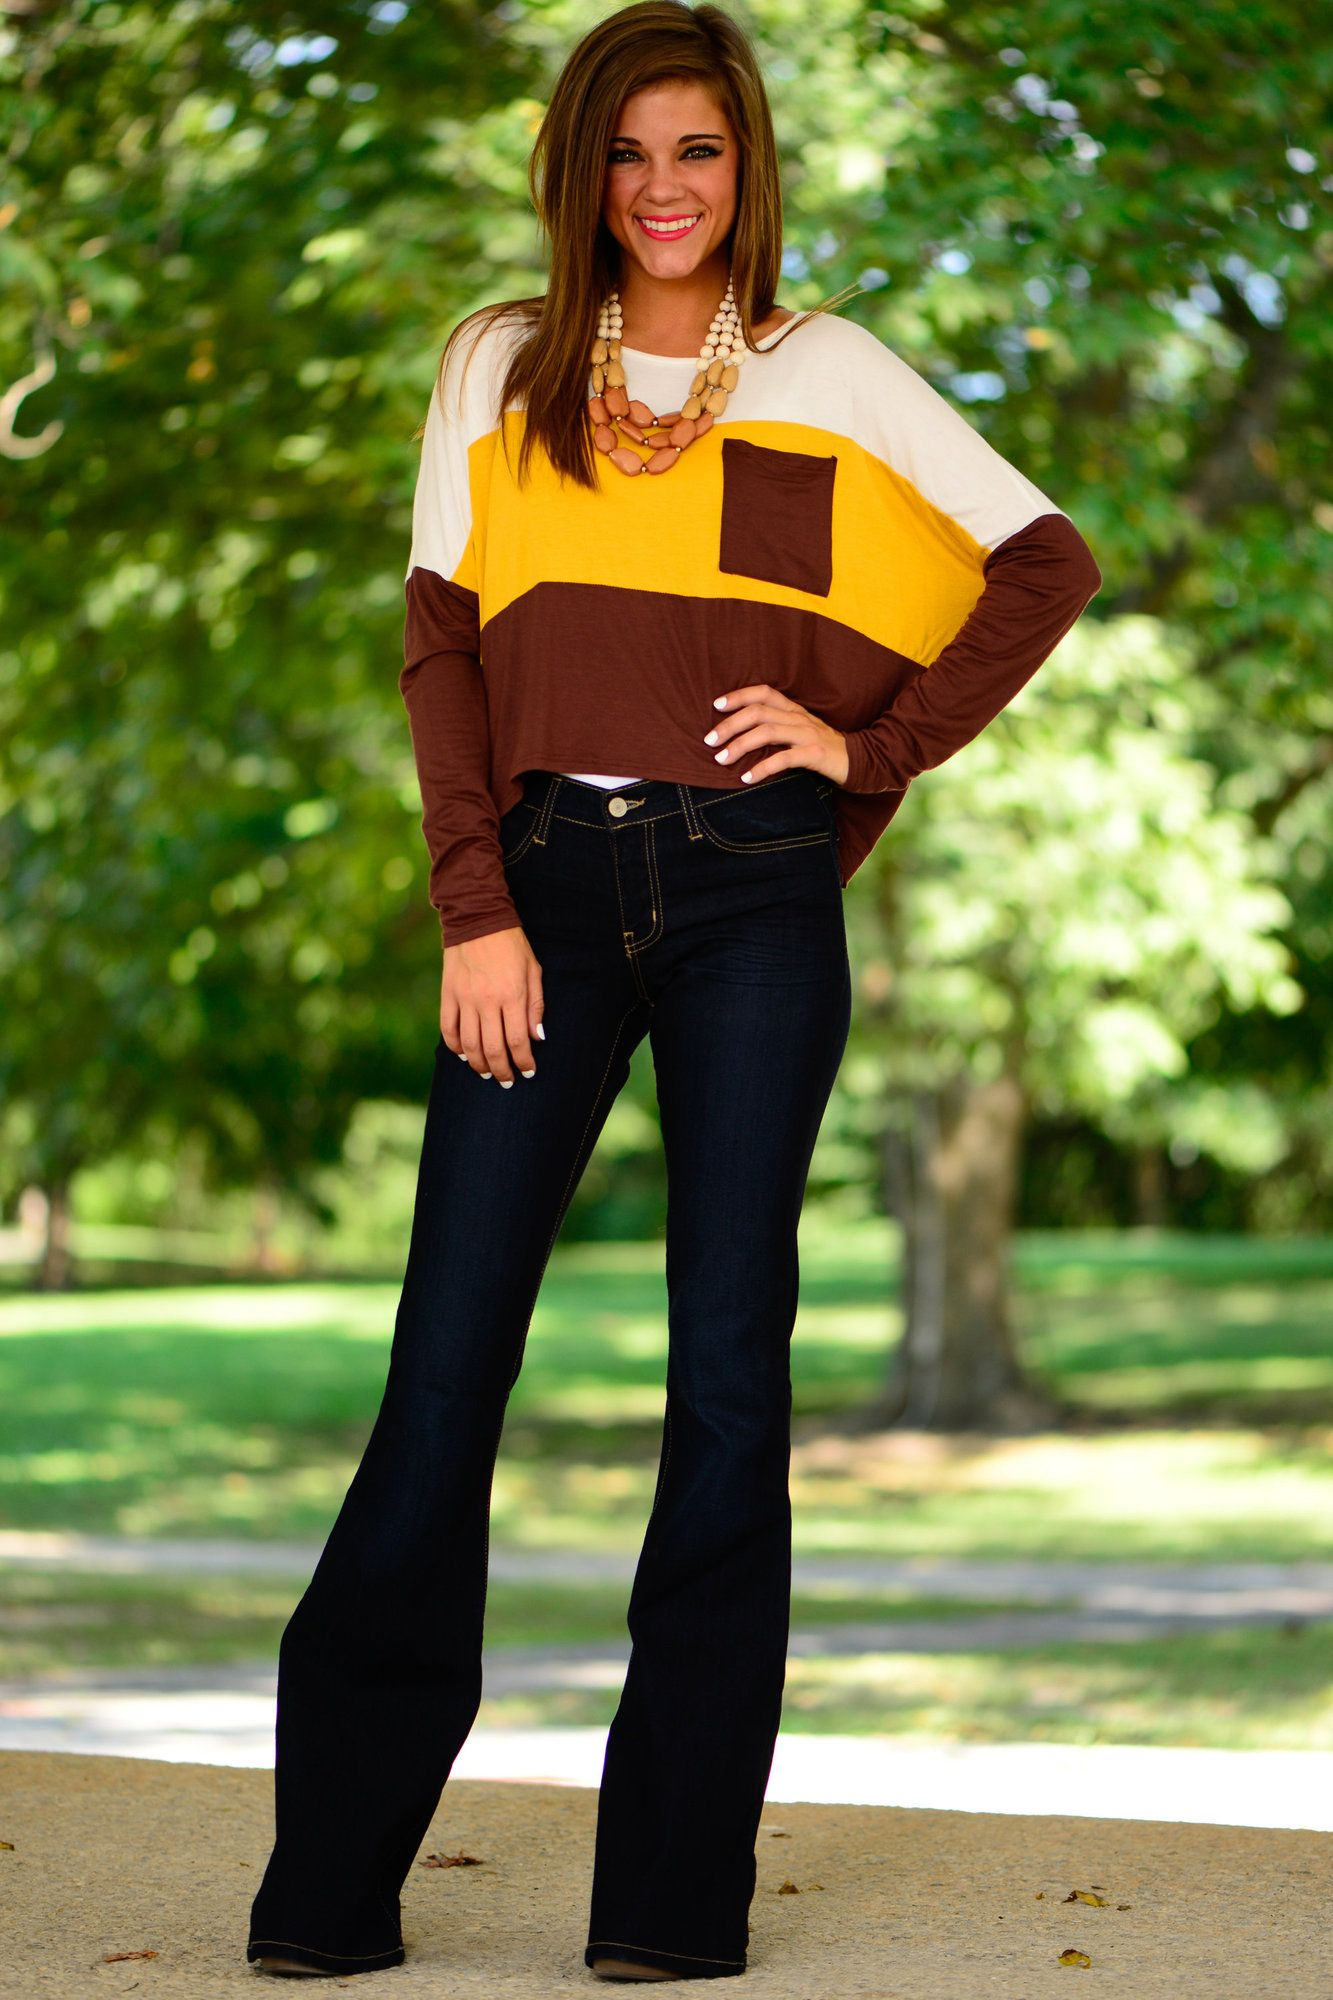 https://www.shopthemint.com/product_images/color-block-crop-top-gold-brown/gob/54be5f6769702d53acb30f00/zoom.jpg?c=1422189965